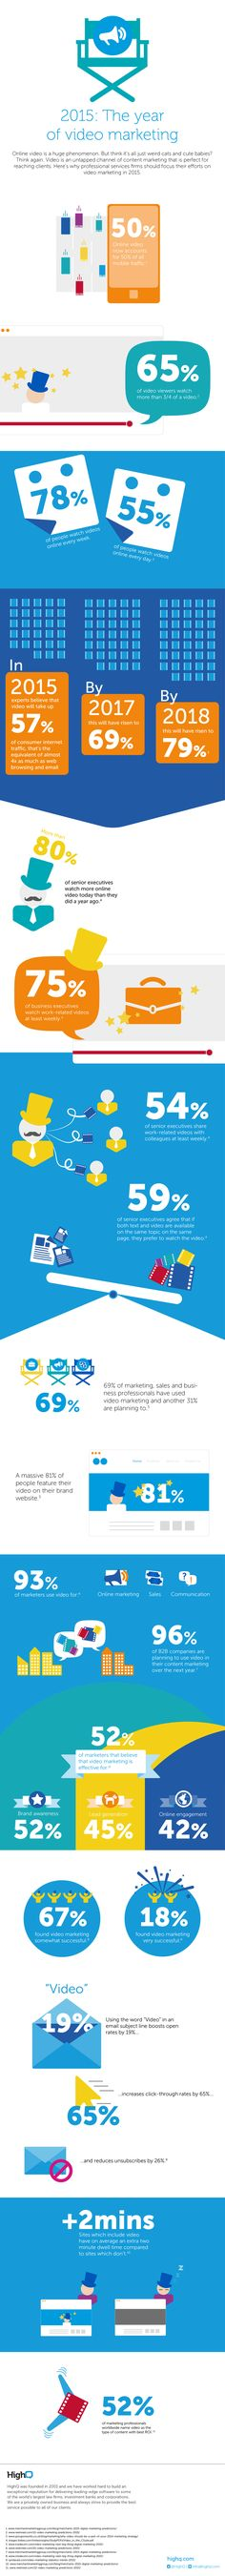 Is Video the Future of Social Marketing? [INFOGRAPHIC] | Social Media Today